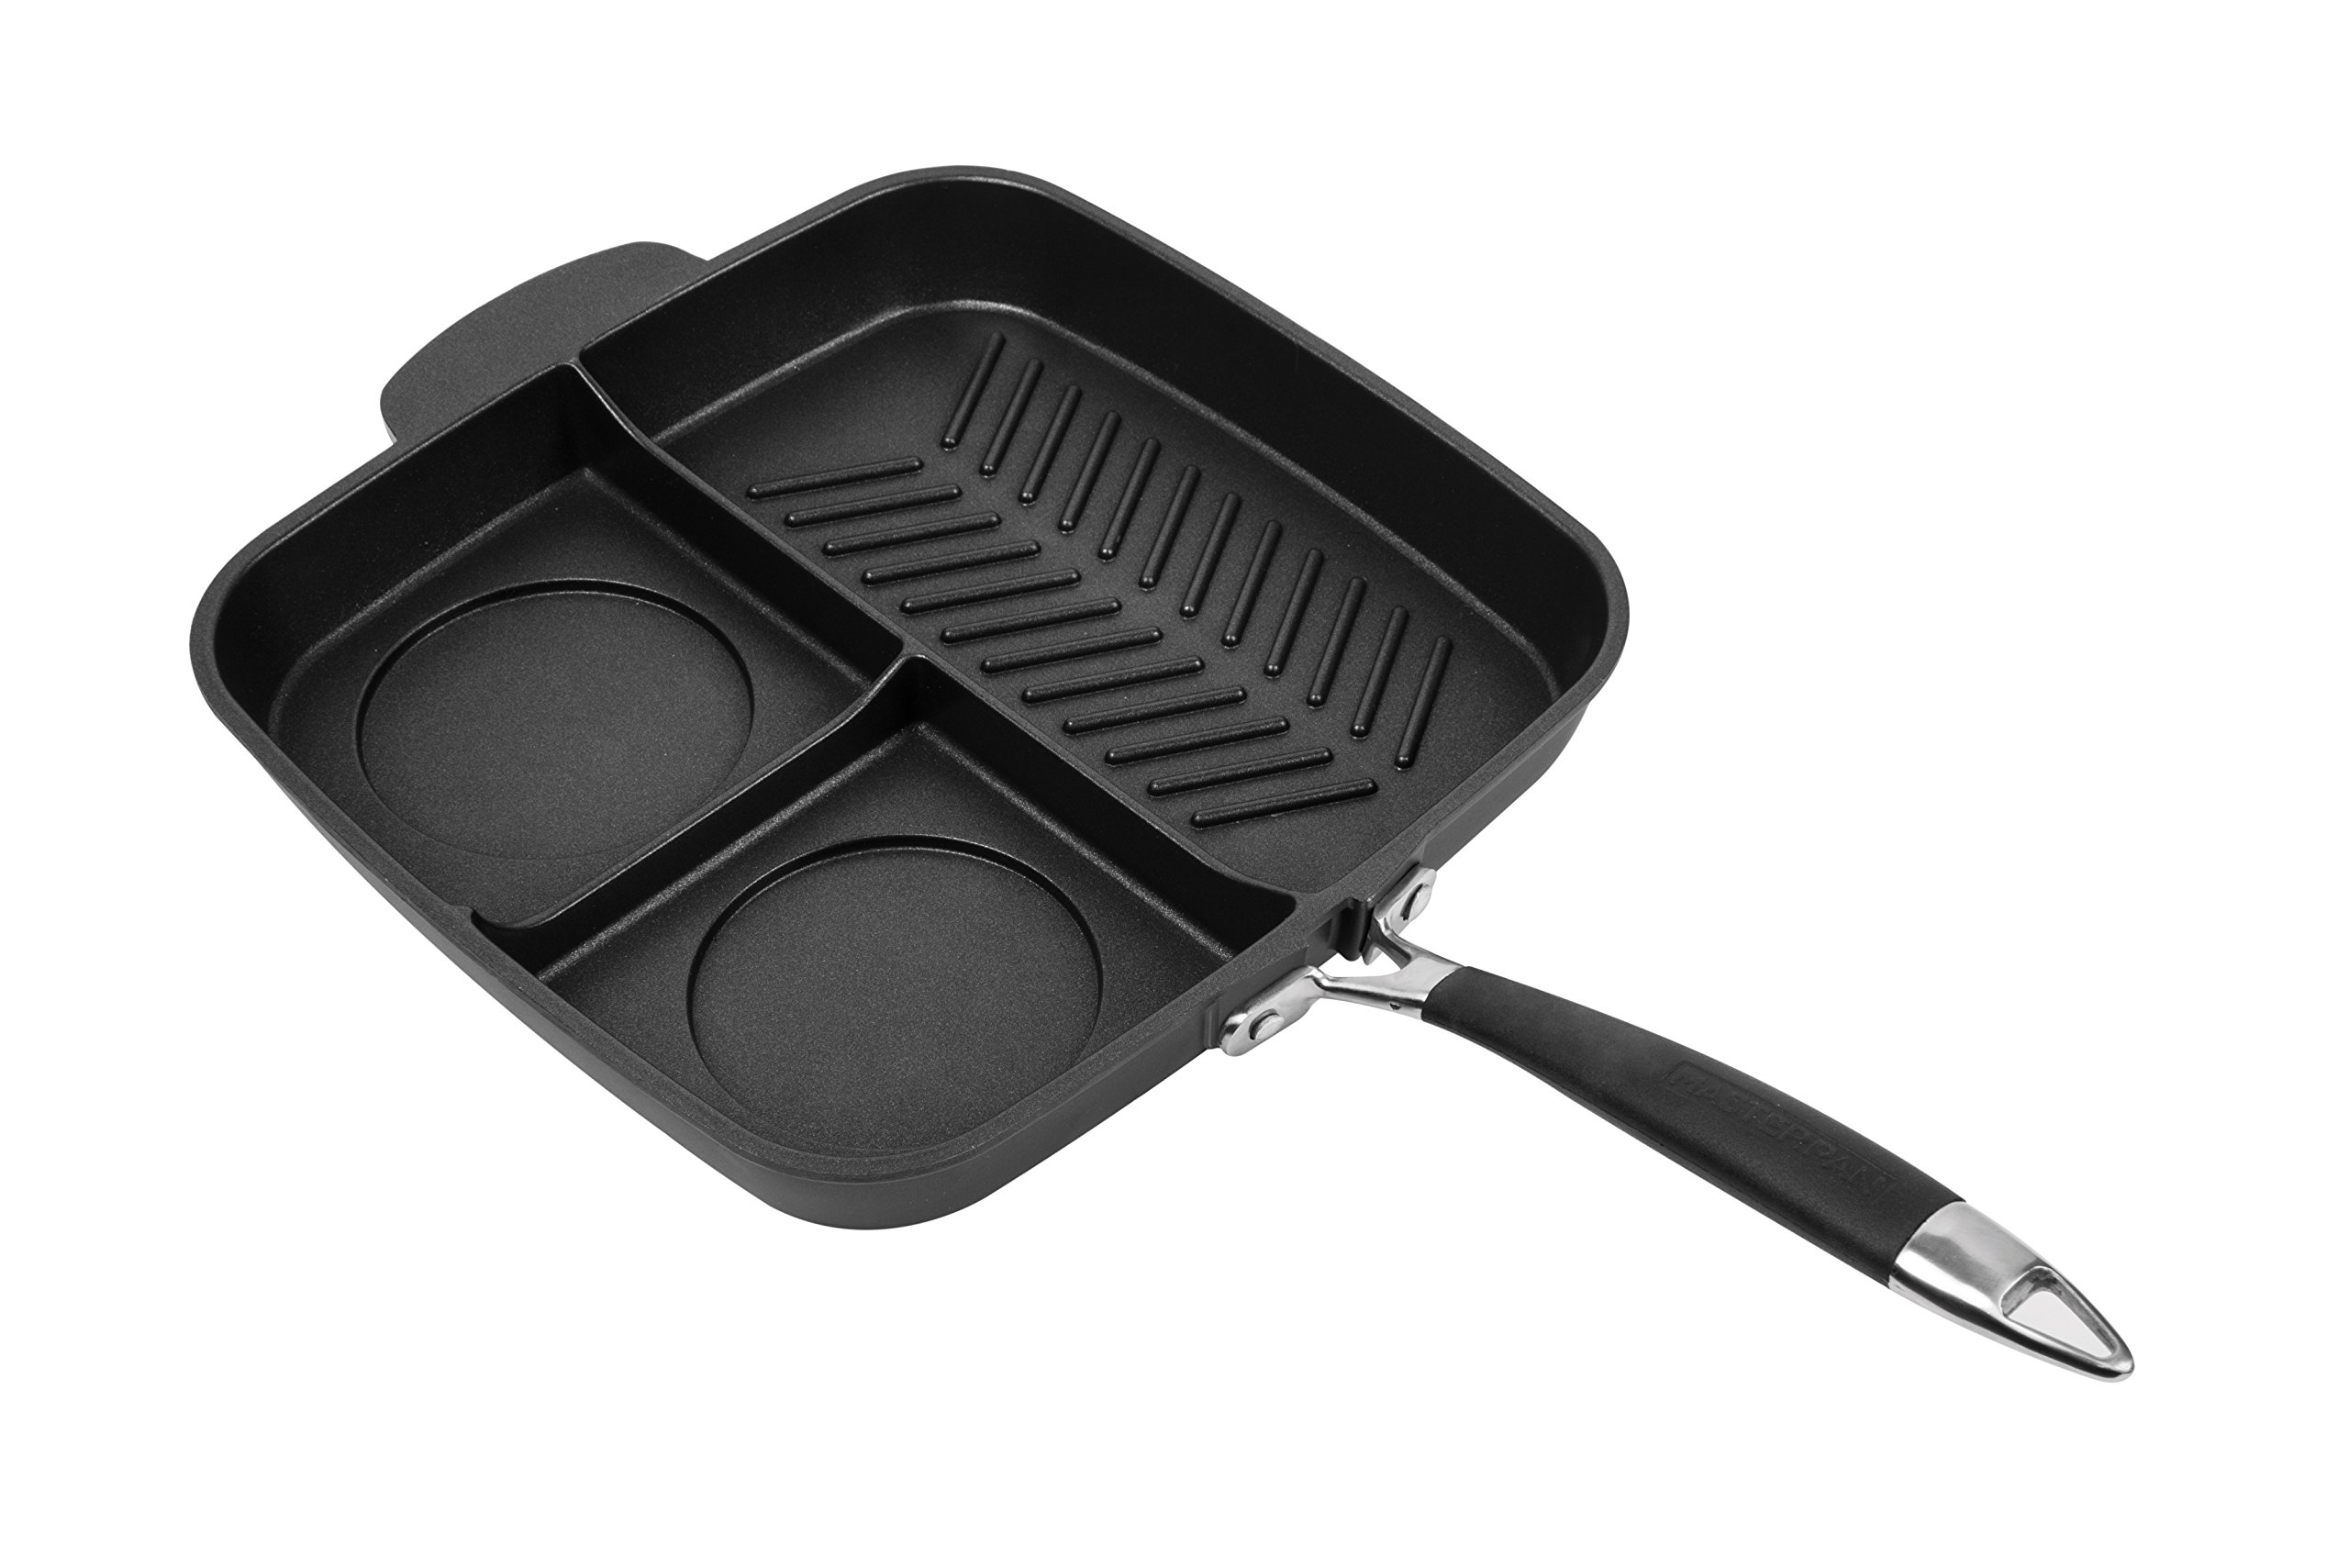 MasterPan Non-Stick 3 Section Meal Skillet, 11'', Black by Master Pan